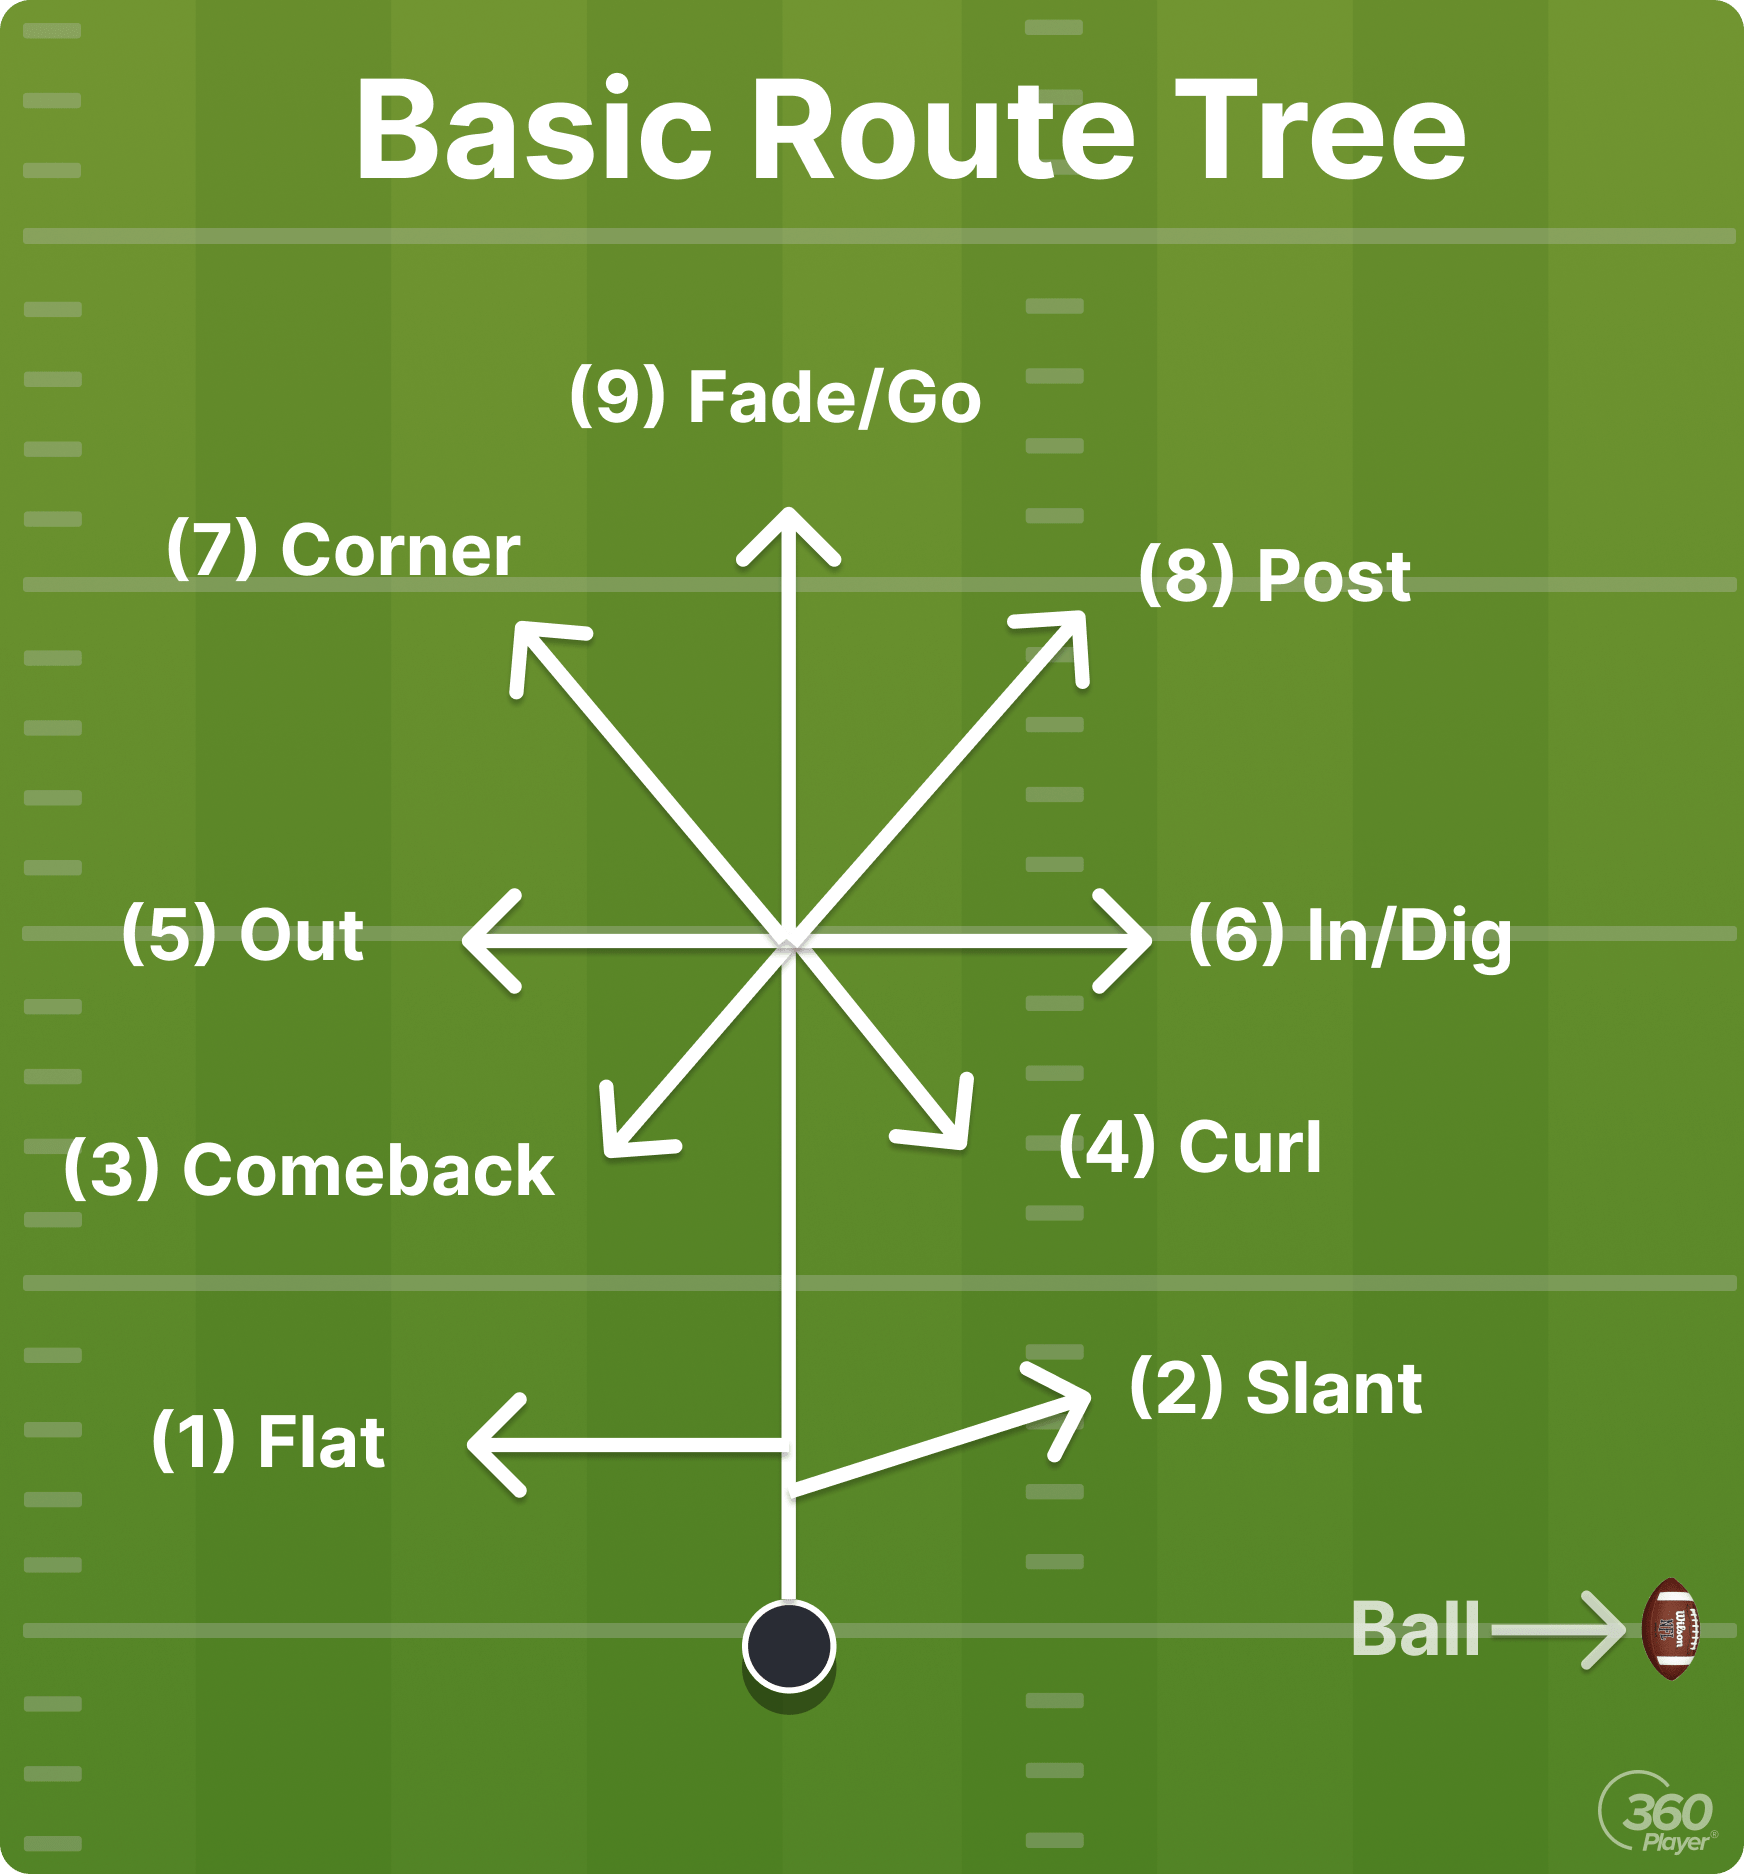 Basic Route Tree